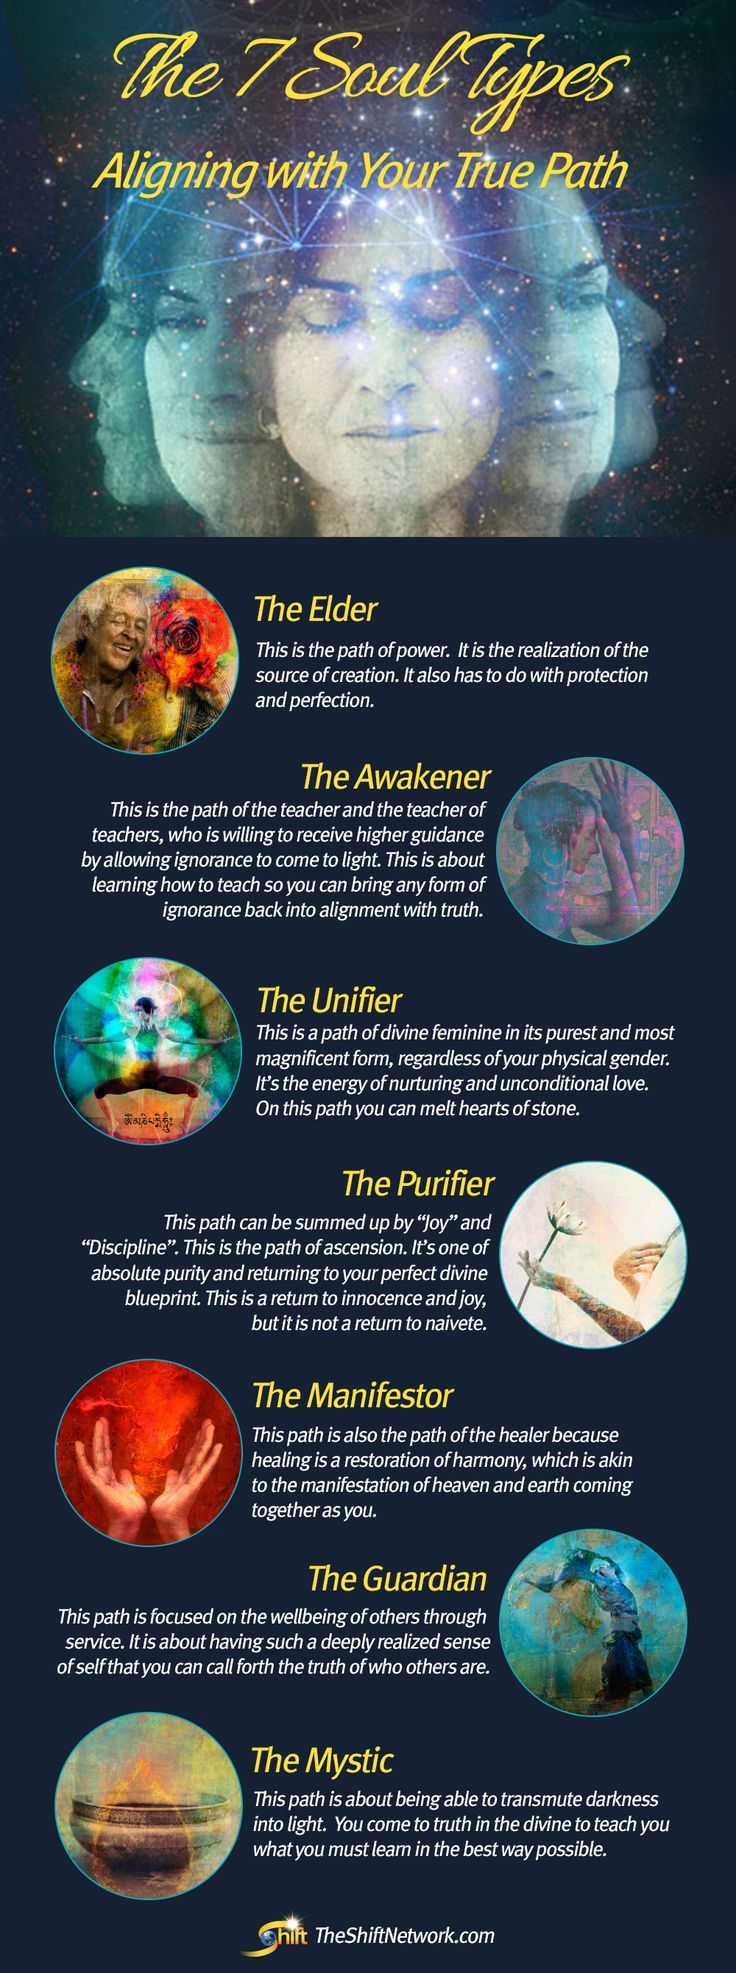 The 7 Soul Types: Aligning with Your True Path - Did you know that challenges in life are in fact caused by being out of soul alignment? Discover your unique soul path and rediscover who you truly are by checking out the 7 types in the infographic above and see which one resonates with you the most. Learn even more about your soul type here:  http://blog.theshiftnetwork.com/blog/7-soul-types-aligning-your-true-path-ryan-angelo?utm_source=pinterest&utm_campaign=soultype01&utm_medium=social